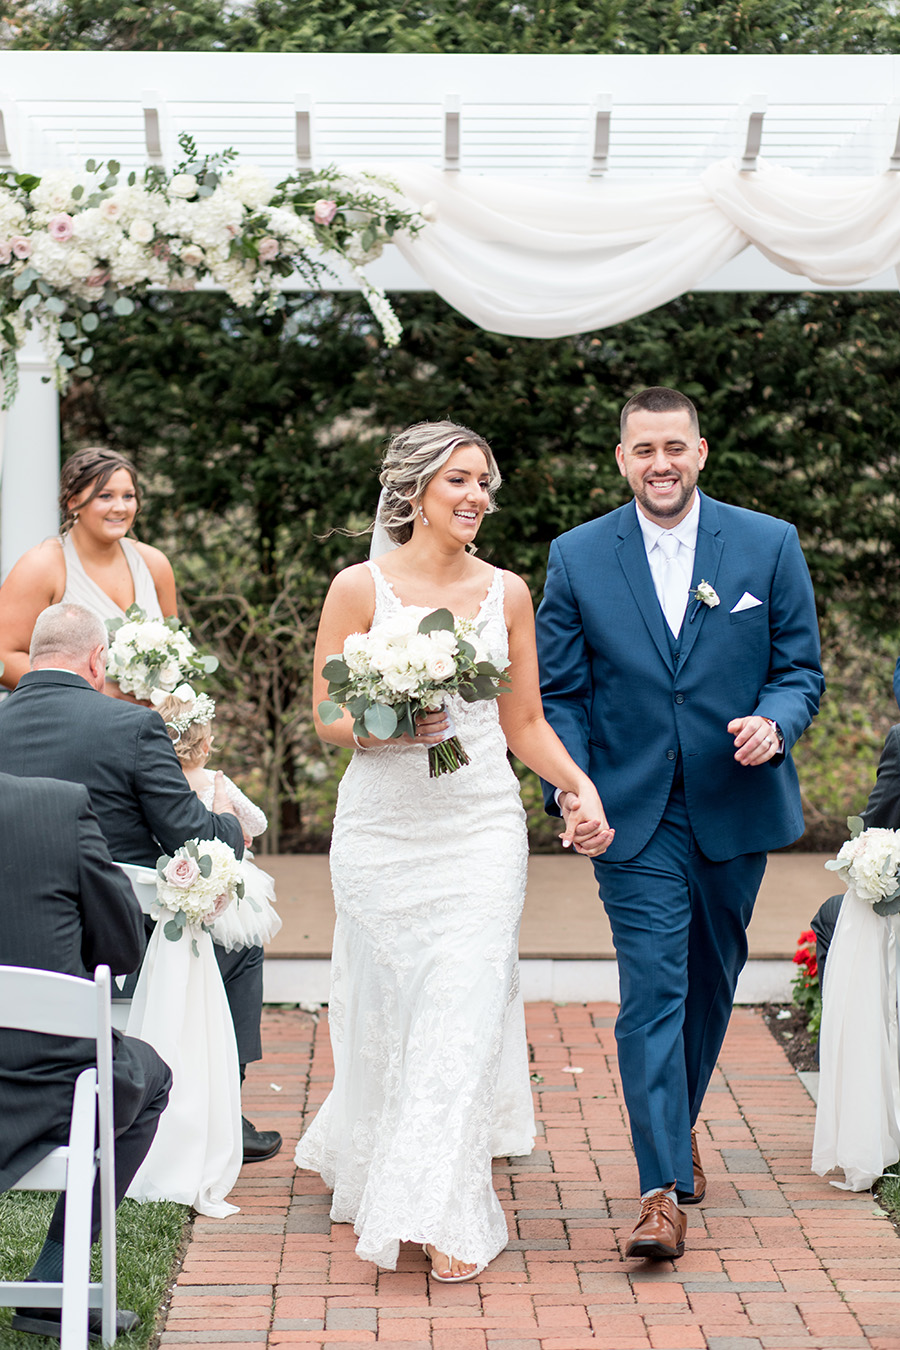 bride and groom walk down the aisle together at their outdoor ceremony at the Bradford Estate